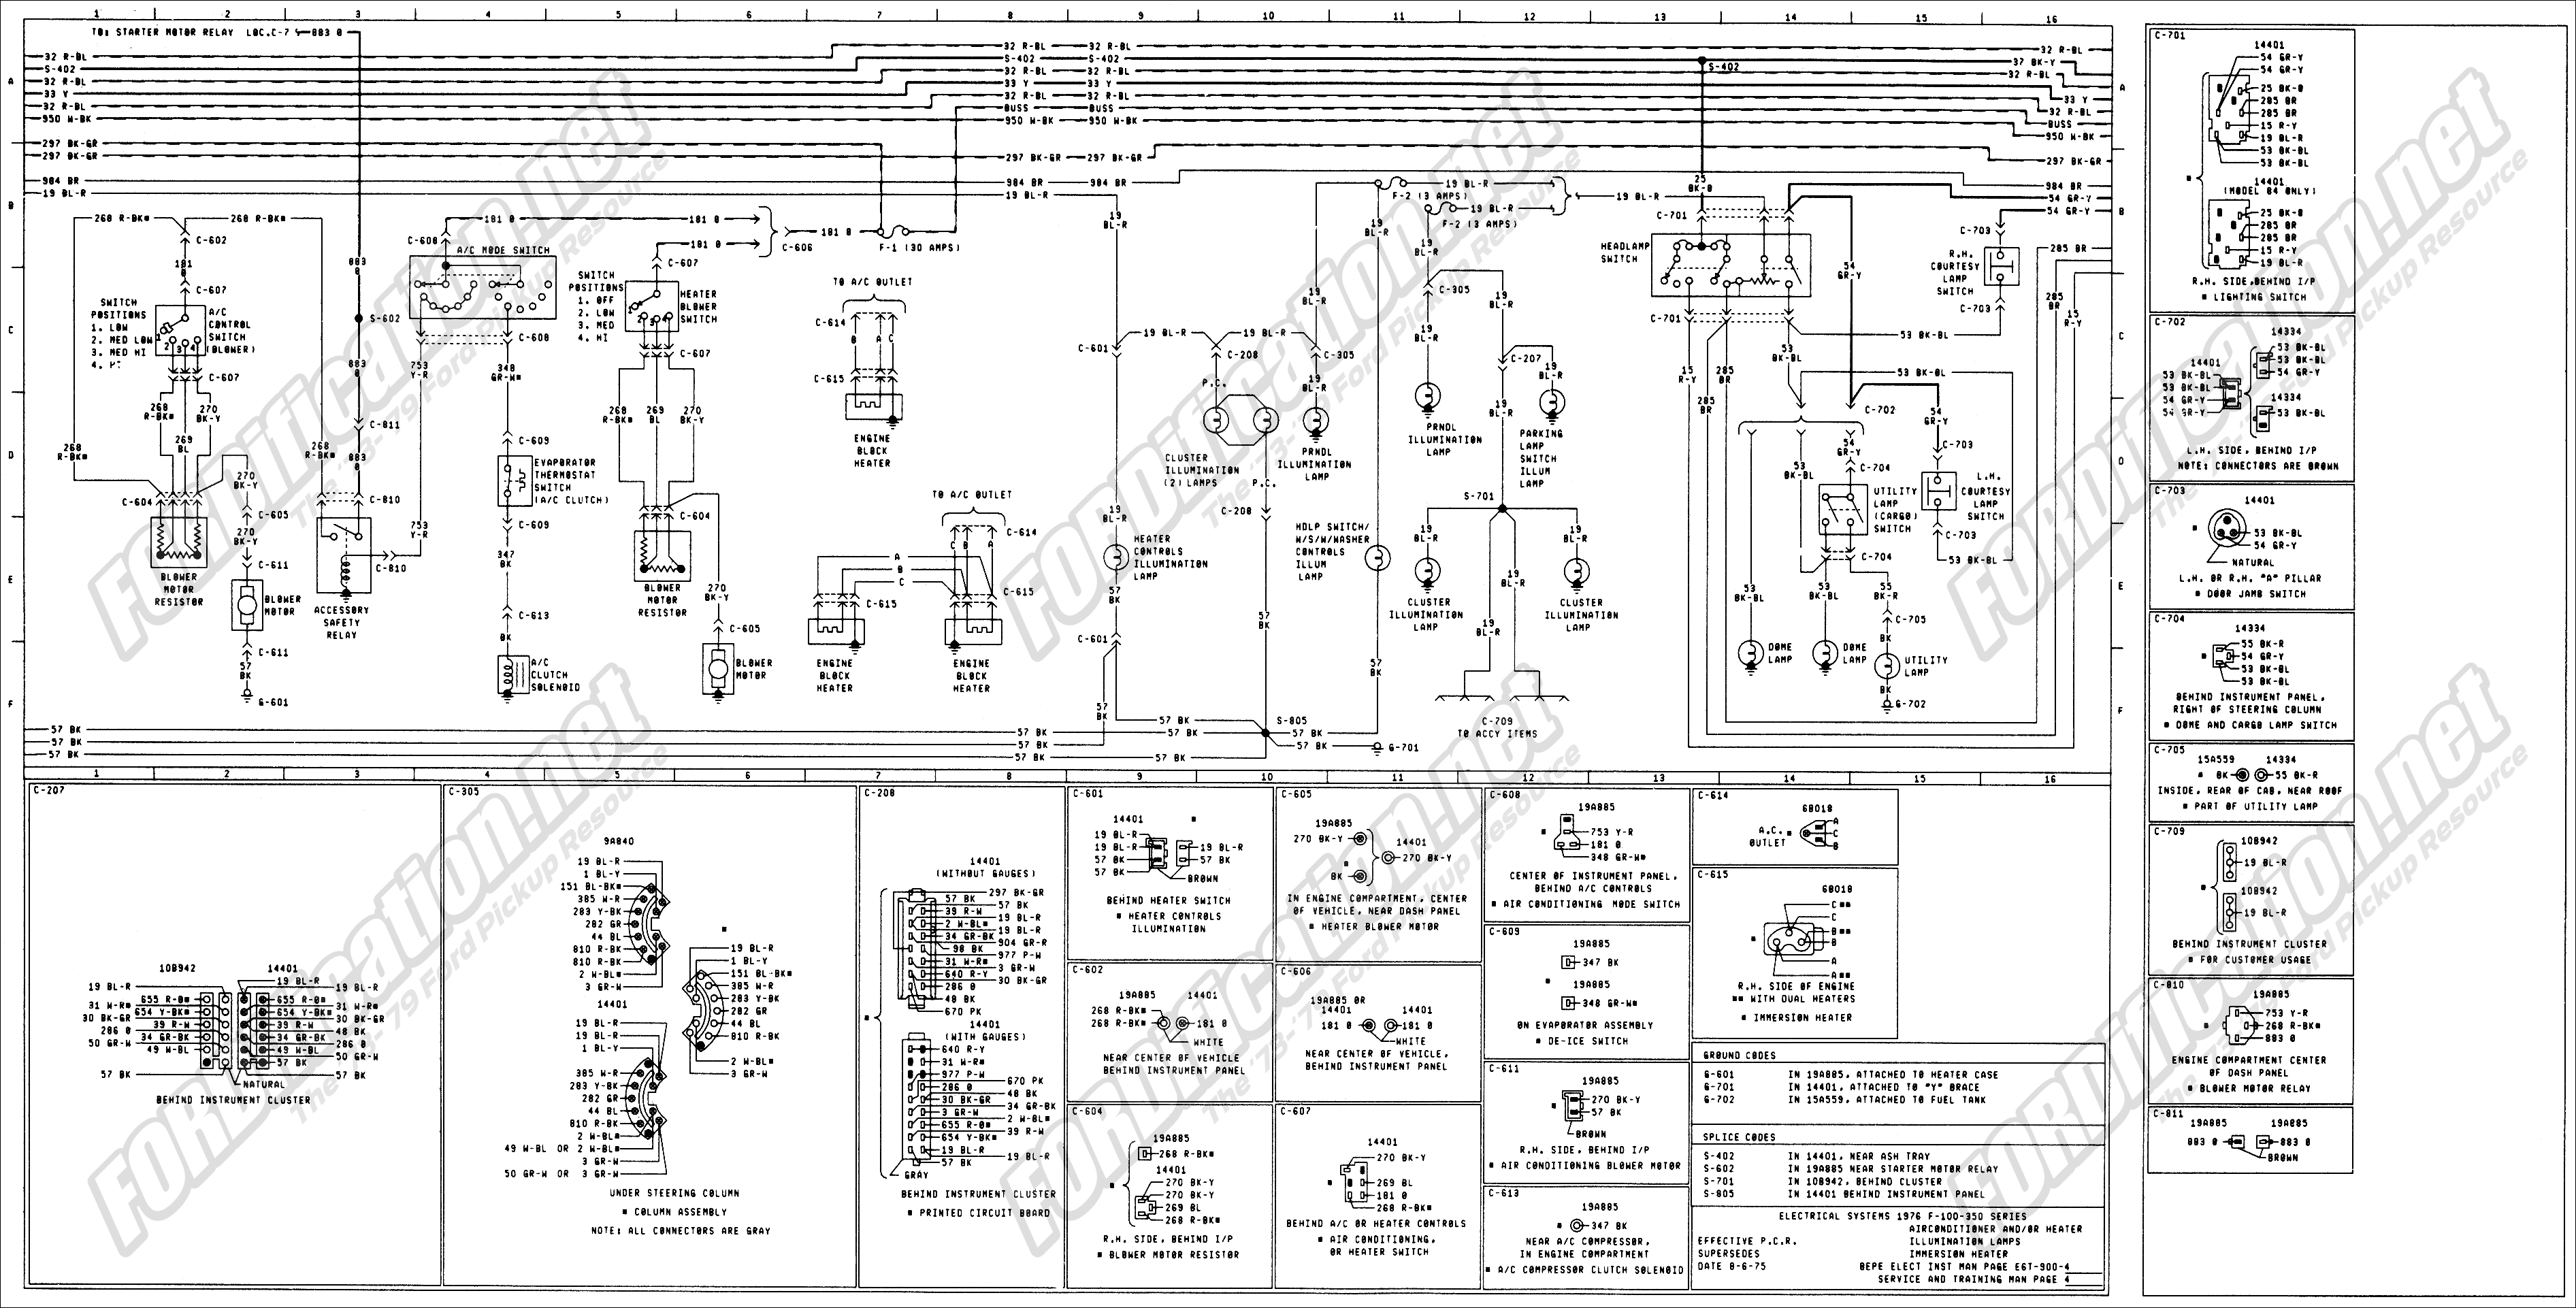 2008 Ford F150 Wiring Diagram Vehiclepad Ford F150 Wiring